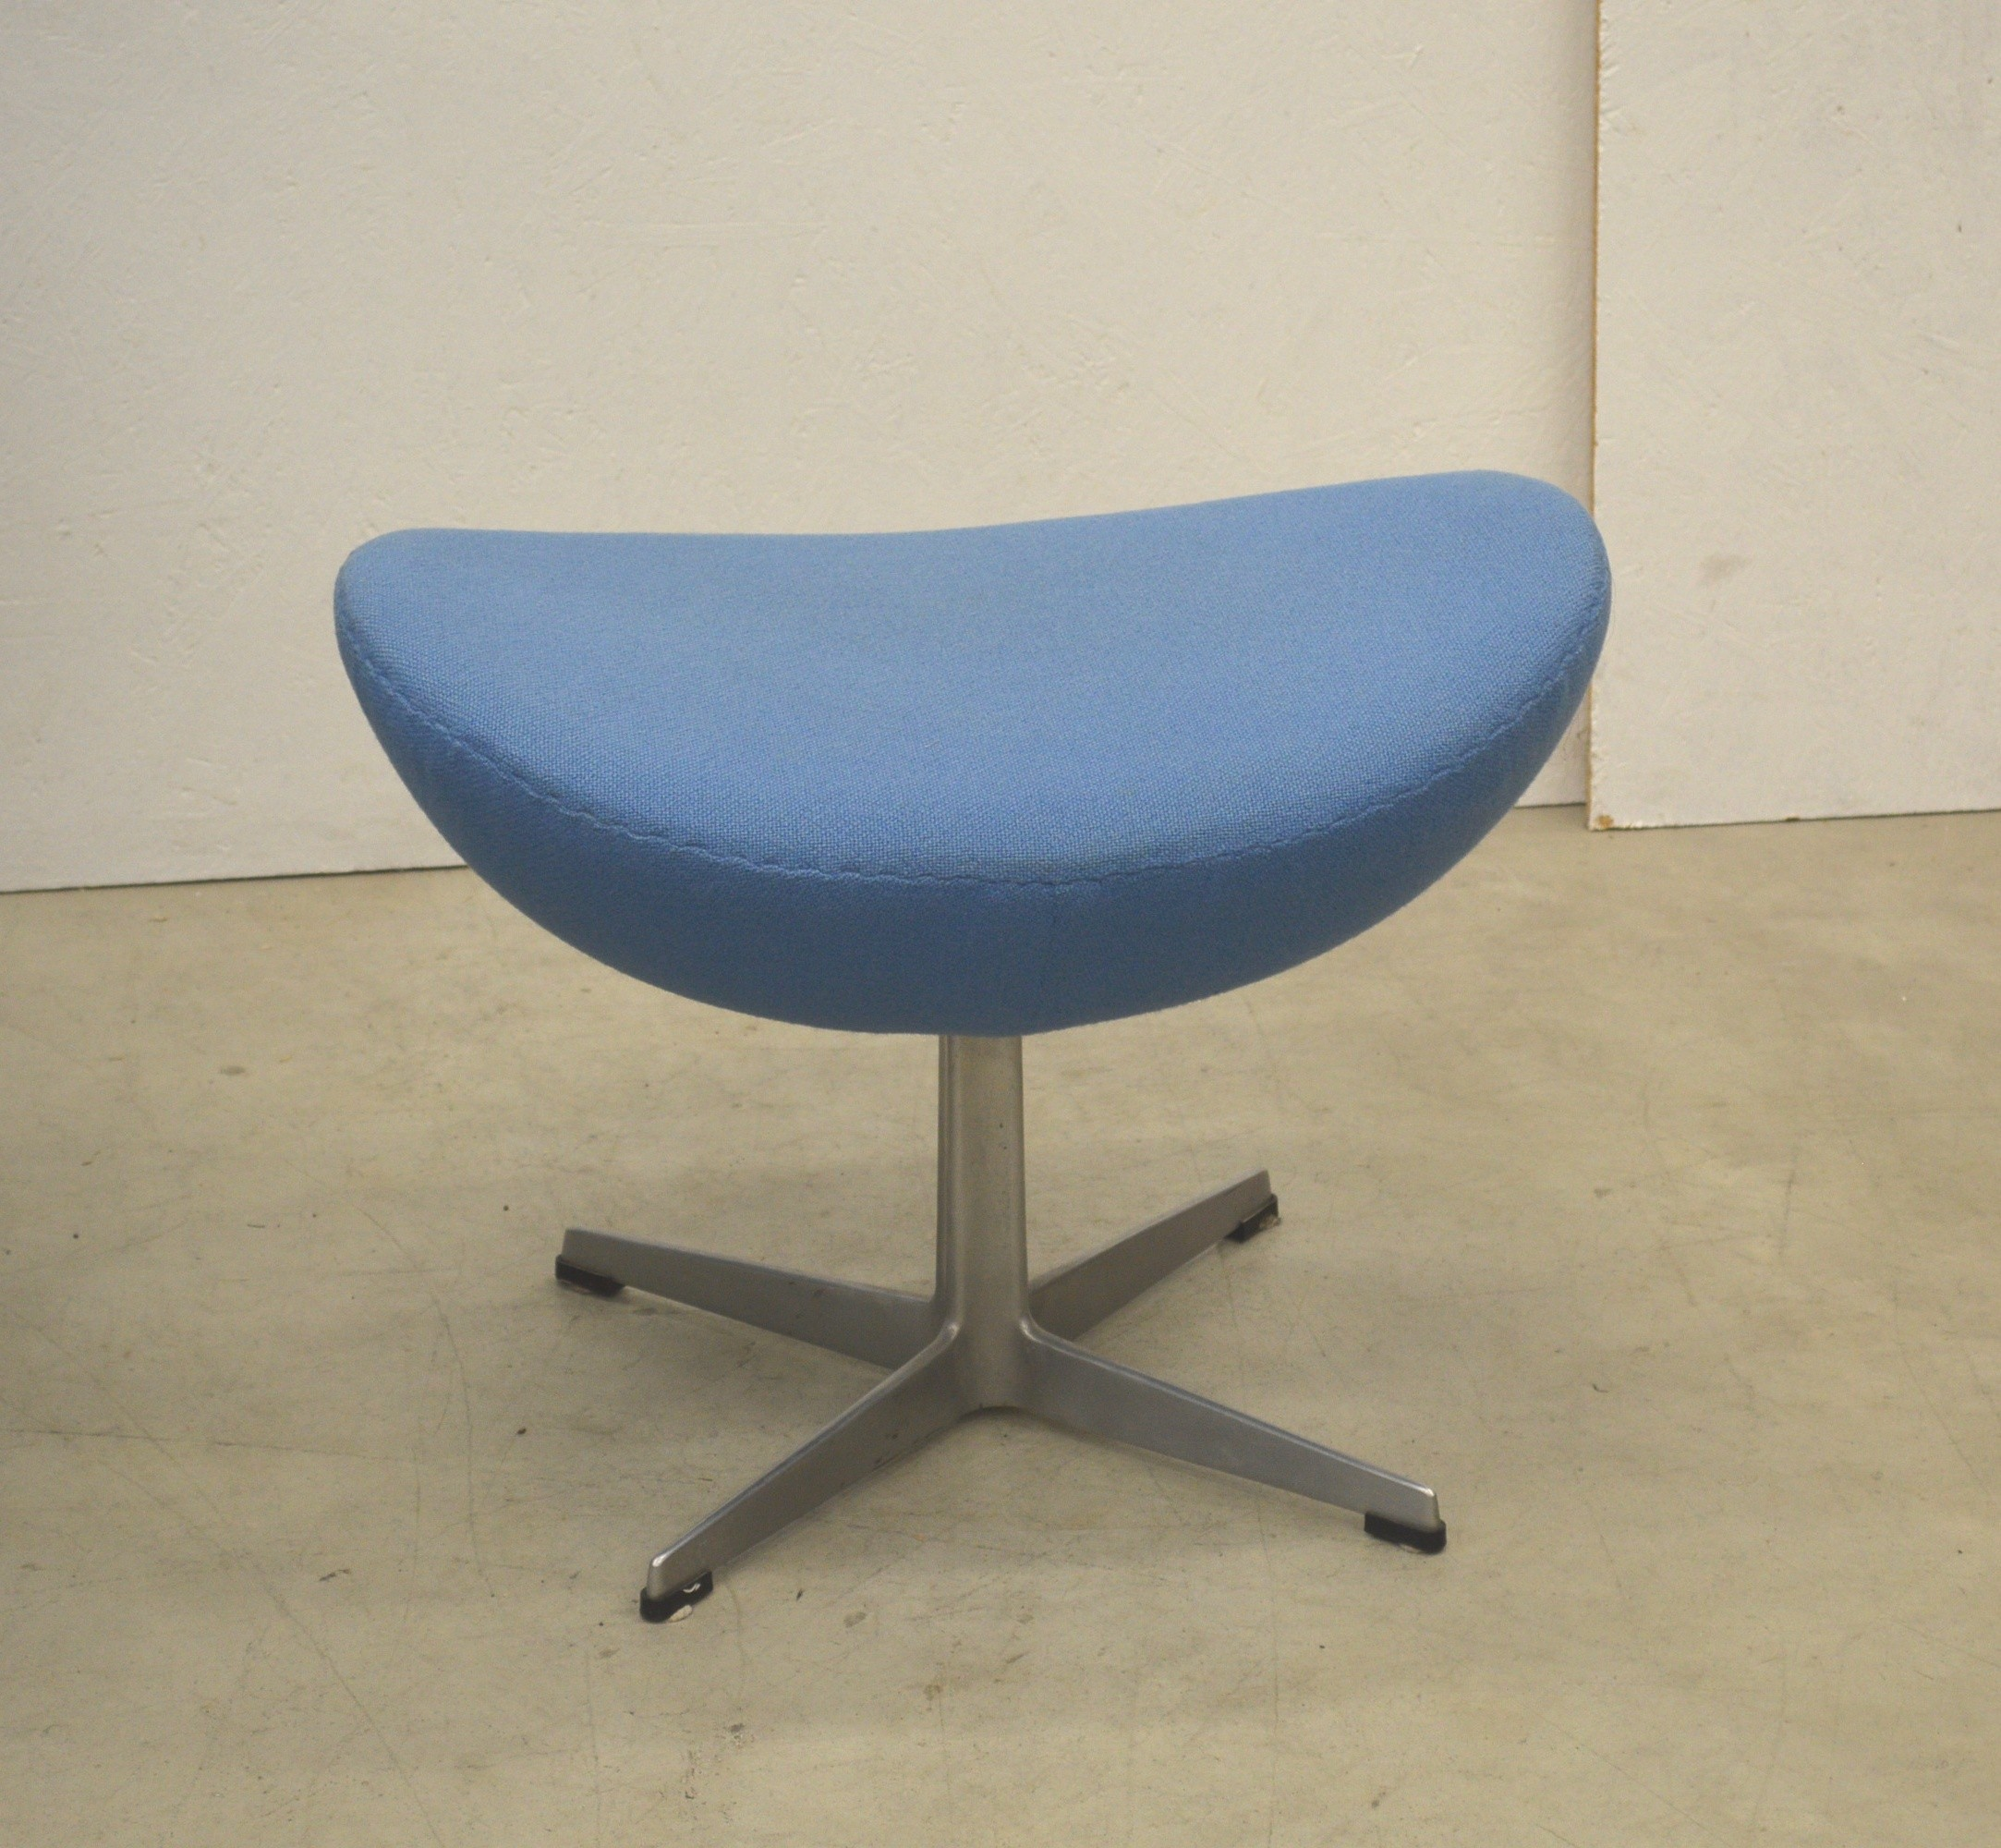 information ike ikea swivel qatar blue furniture shape living lomsk title egg chair items